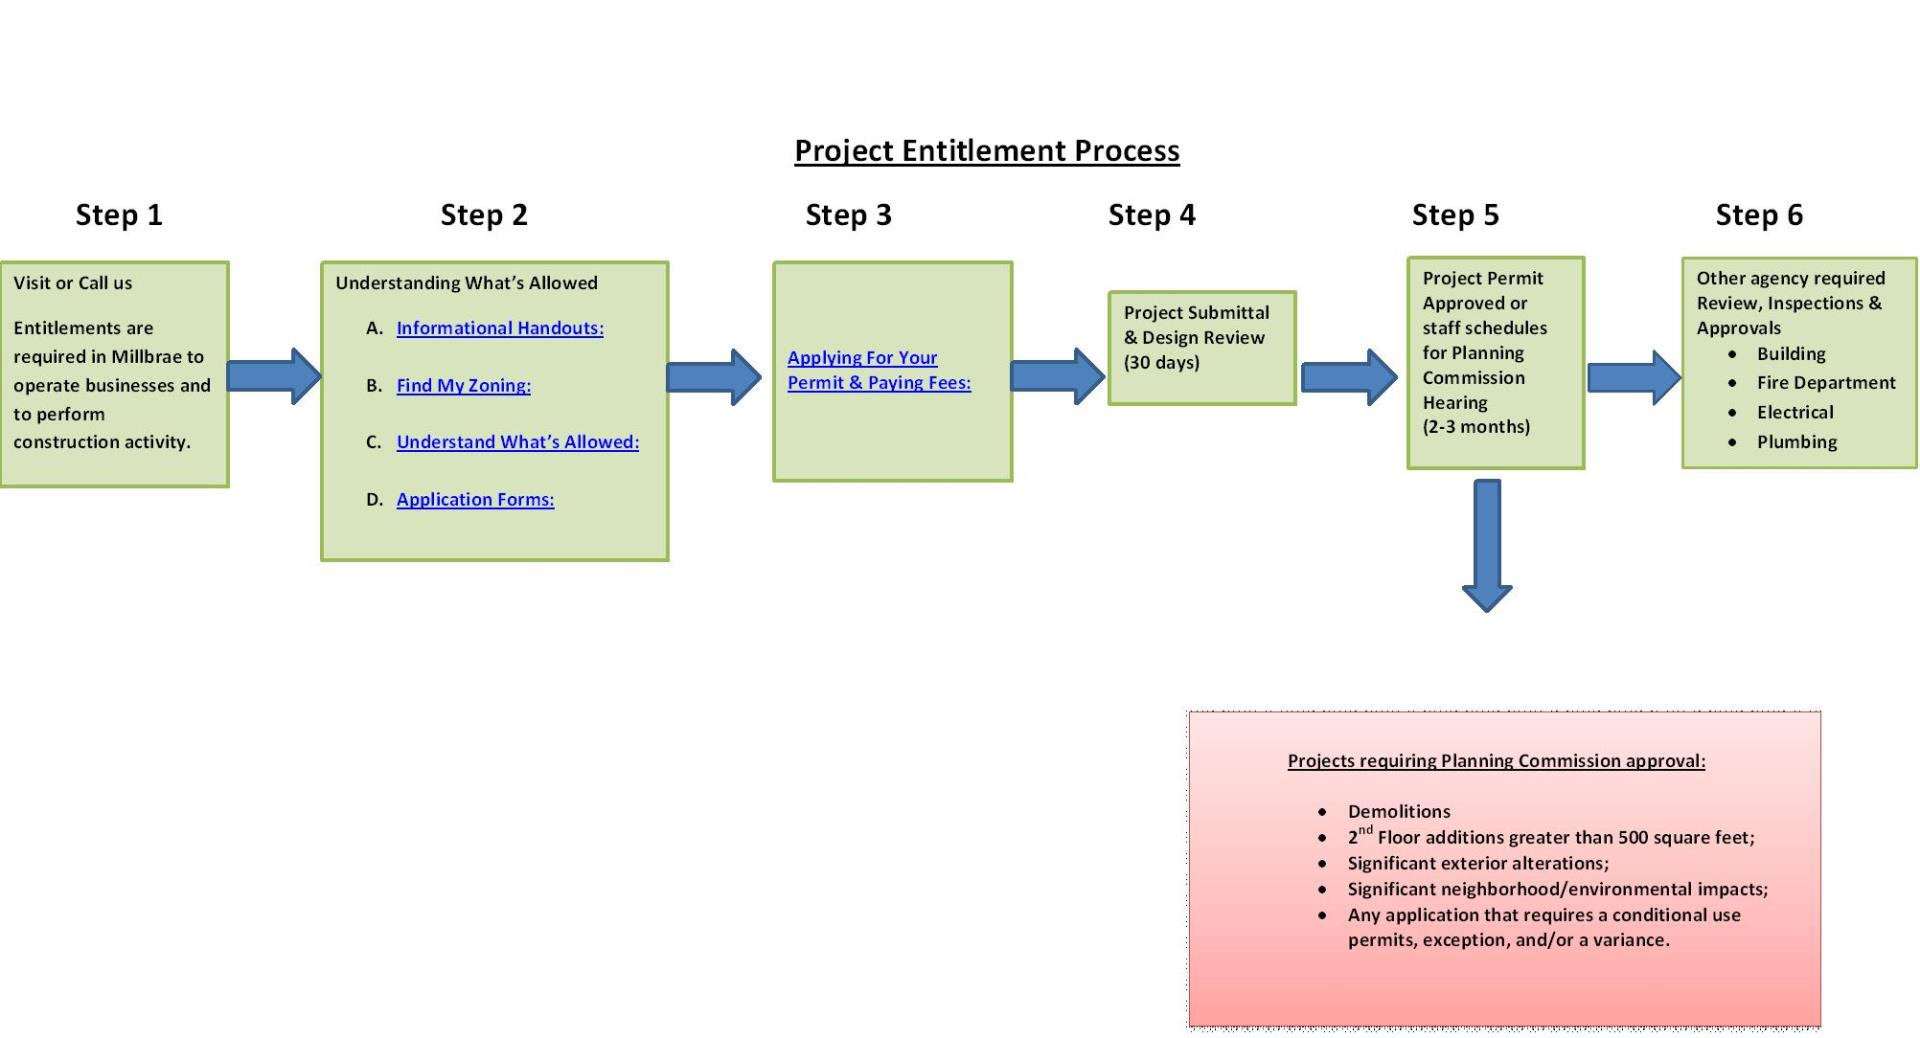 Project_Entitlement_Process